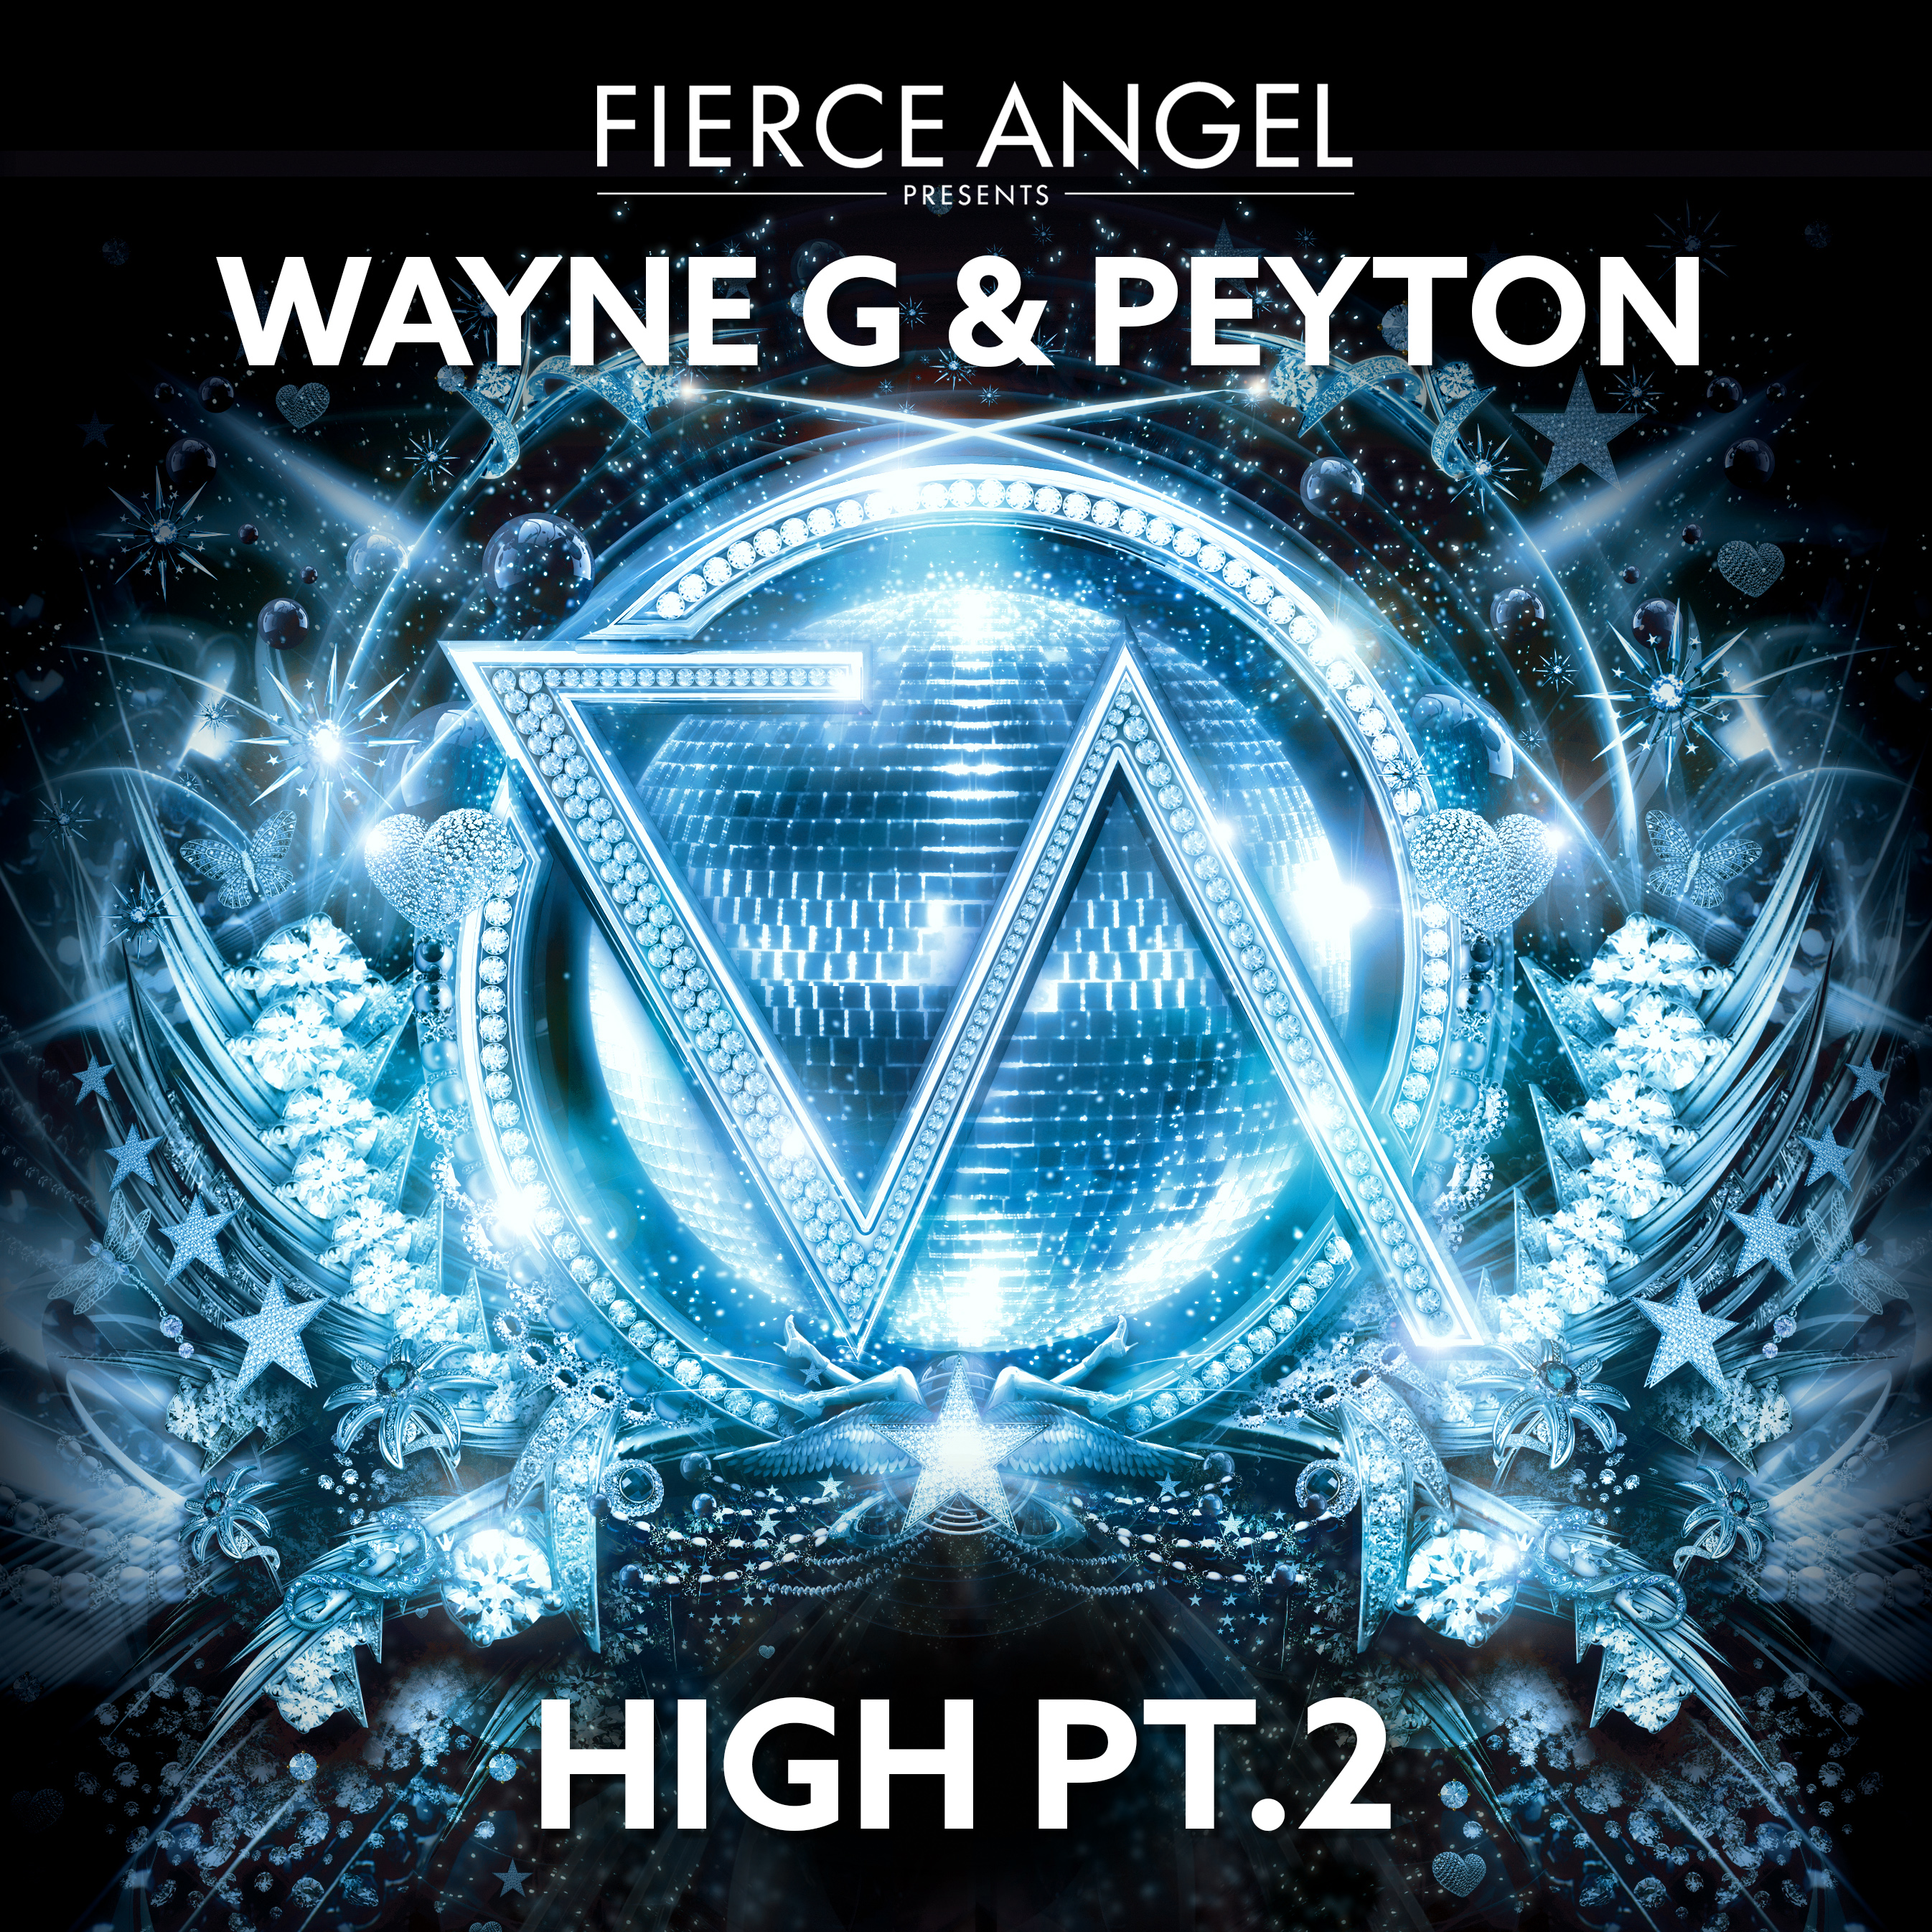 Wayne G & Peyton - High Pt.2